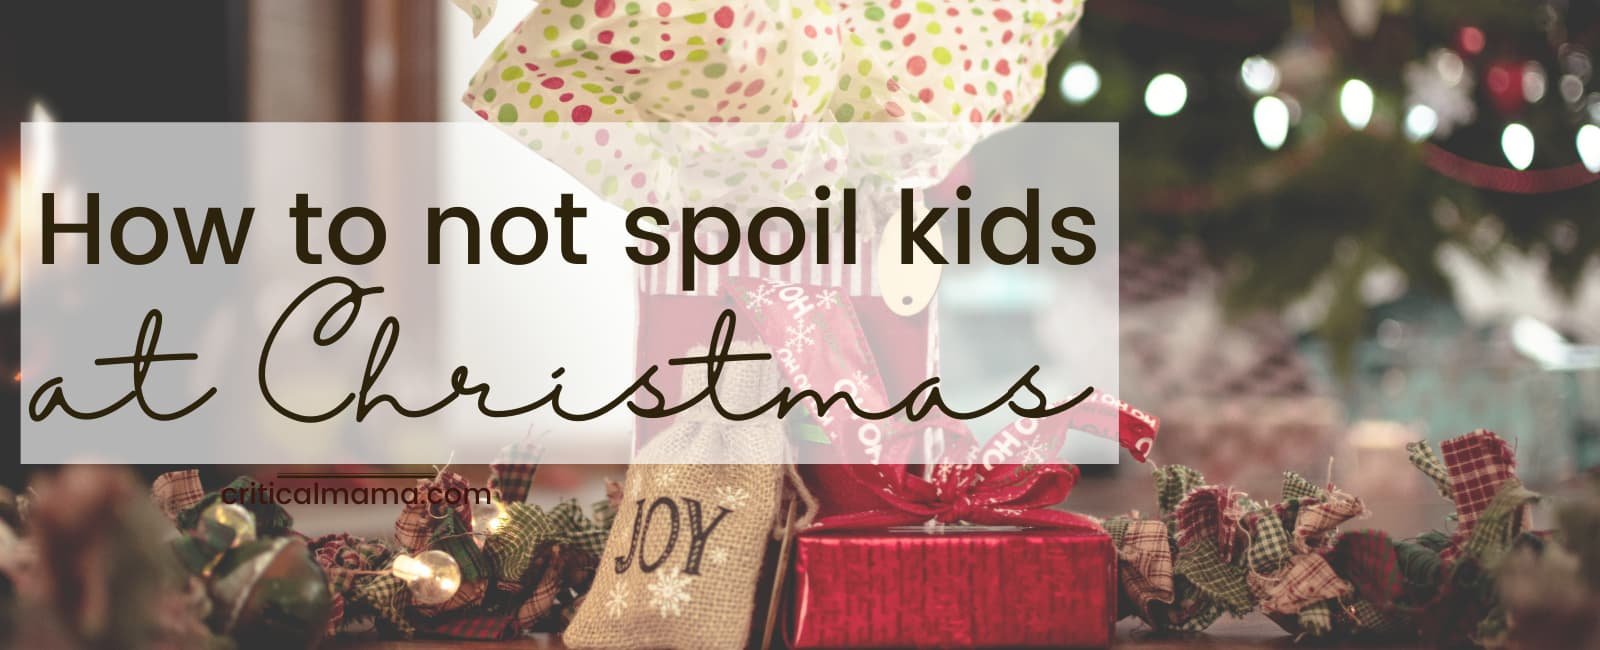 How To Not Spoil Kids At Christmas